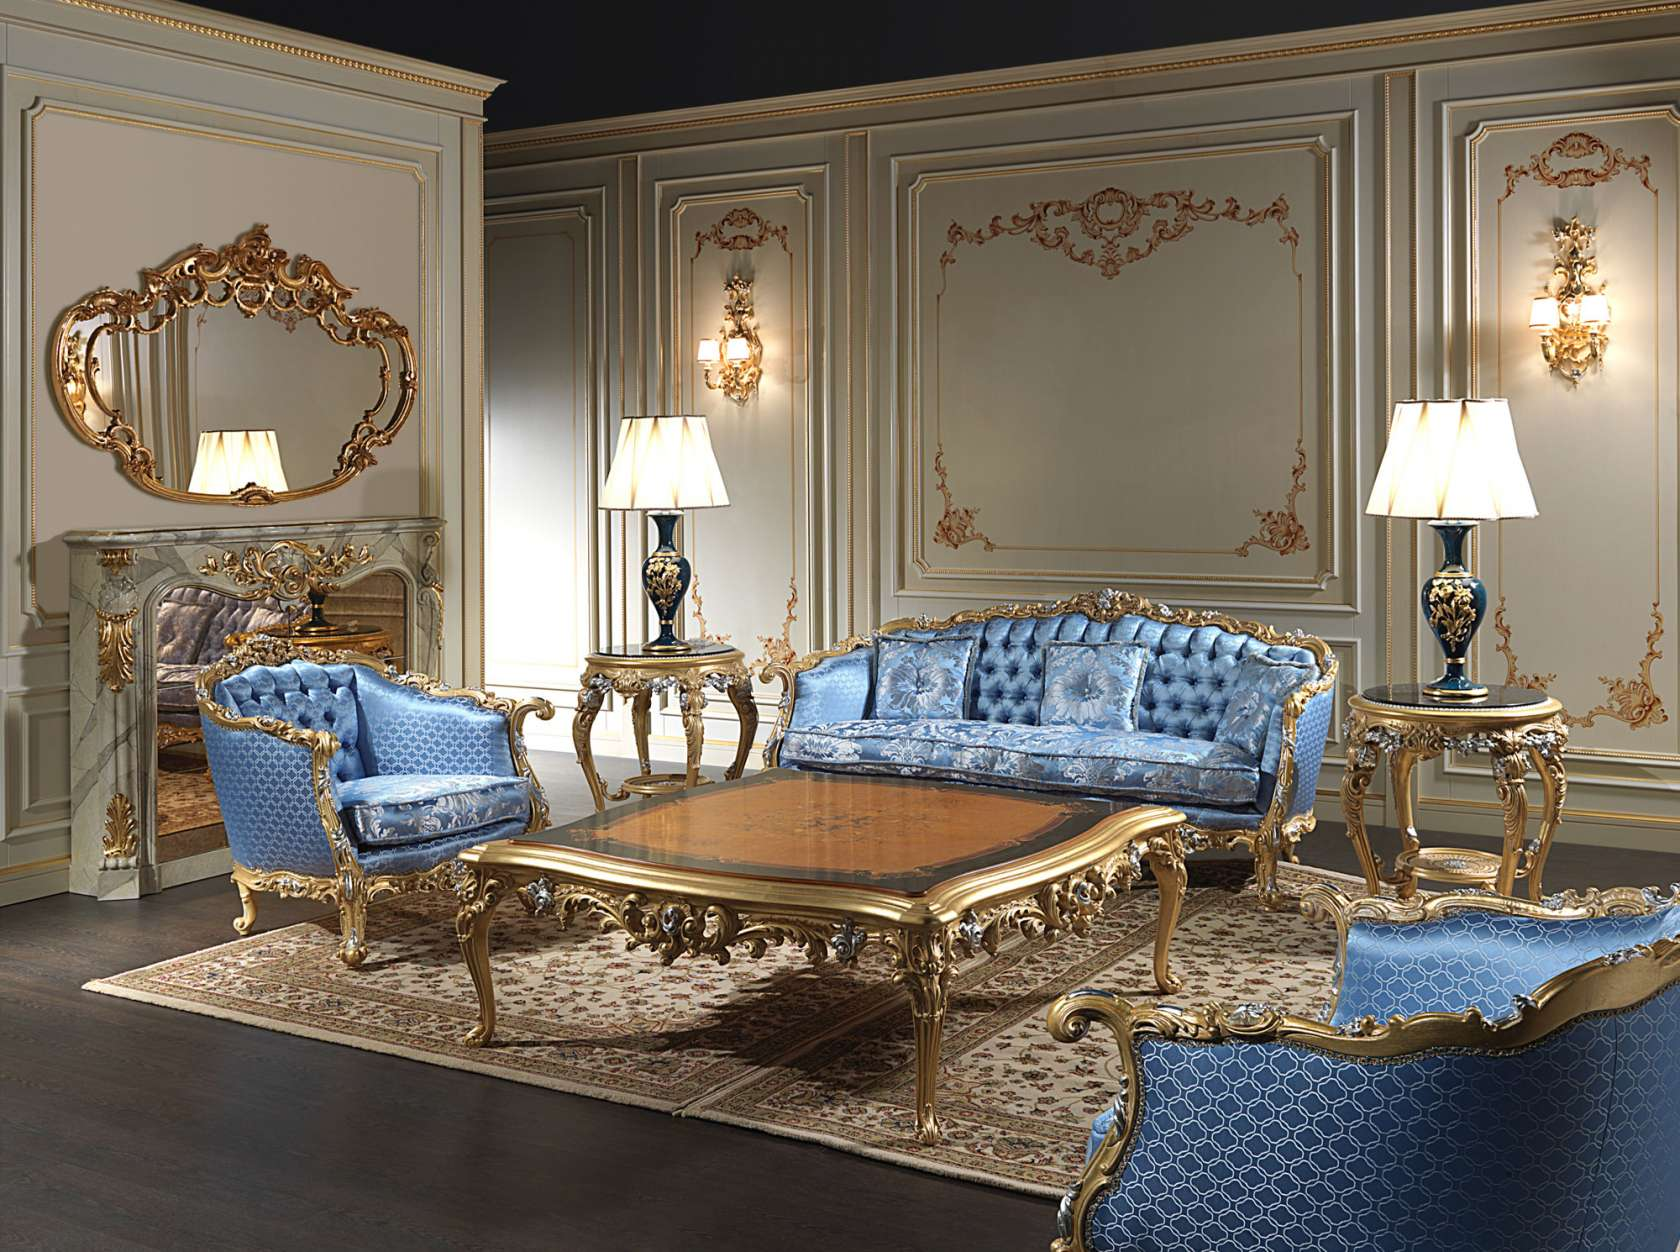 living room made in italy eighteenth century vimercati. Black Bedroom Furniture Sets. Home Design Ideas